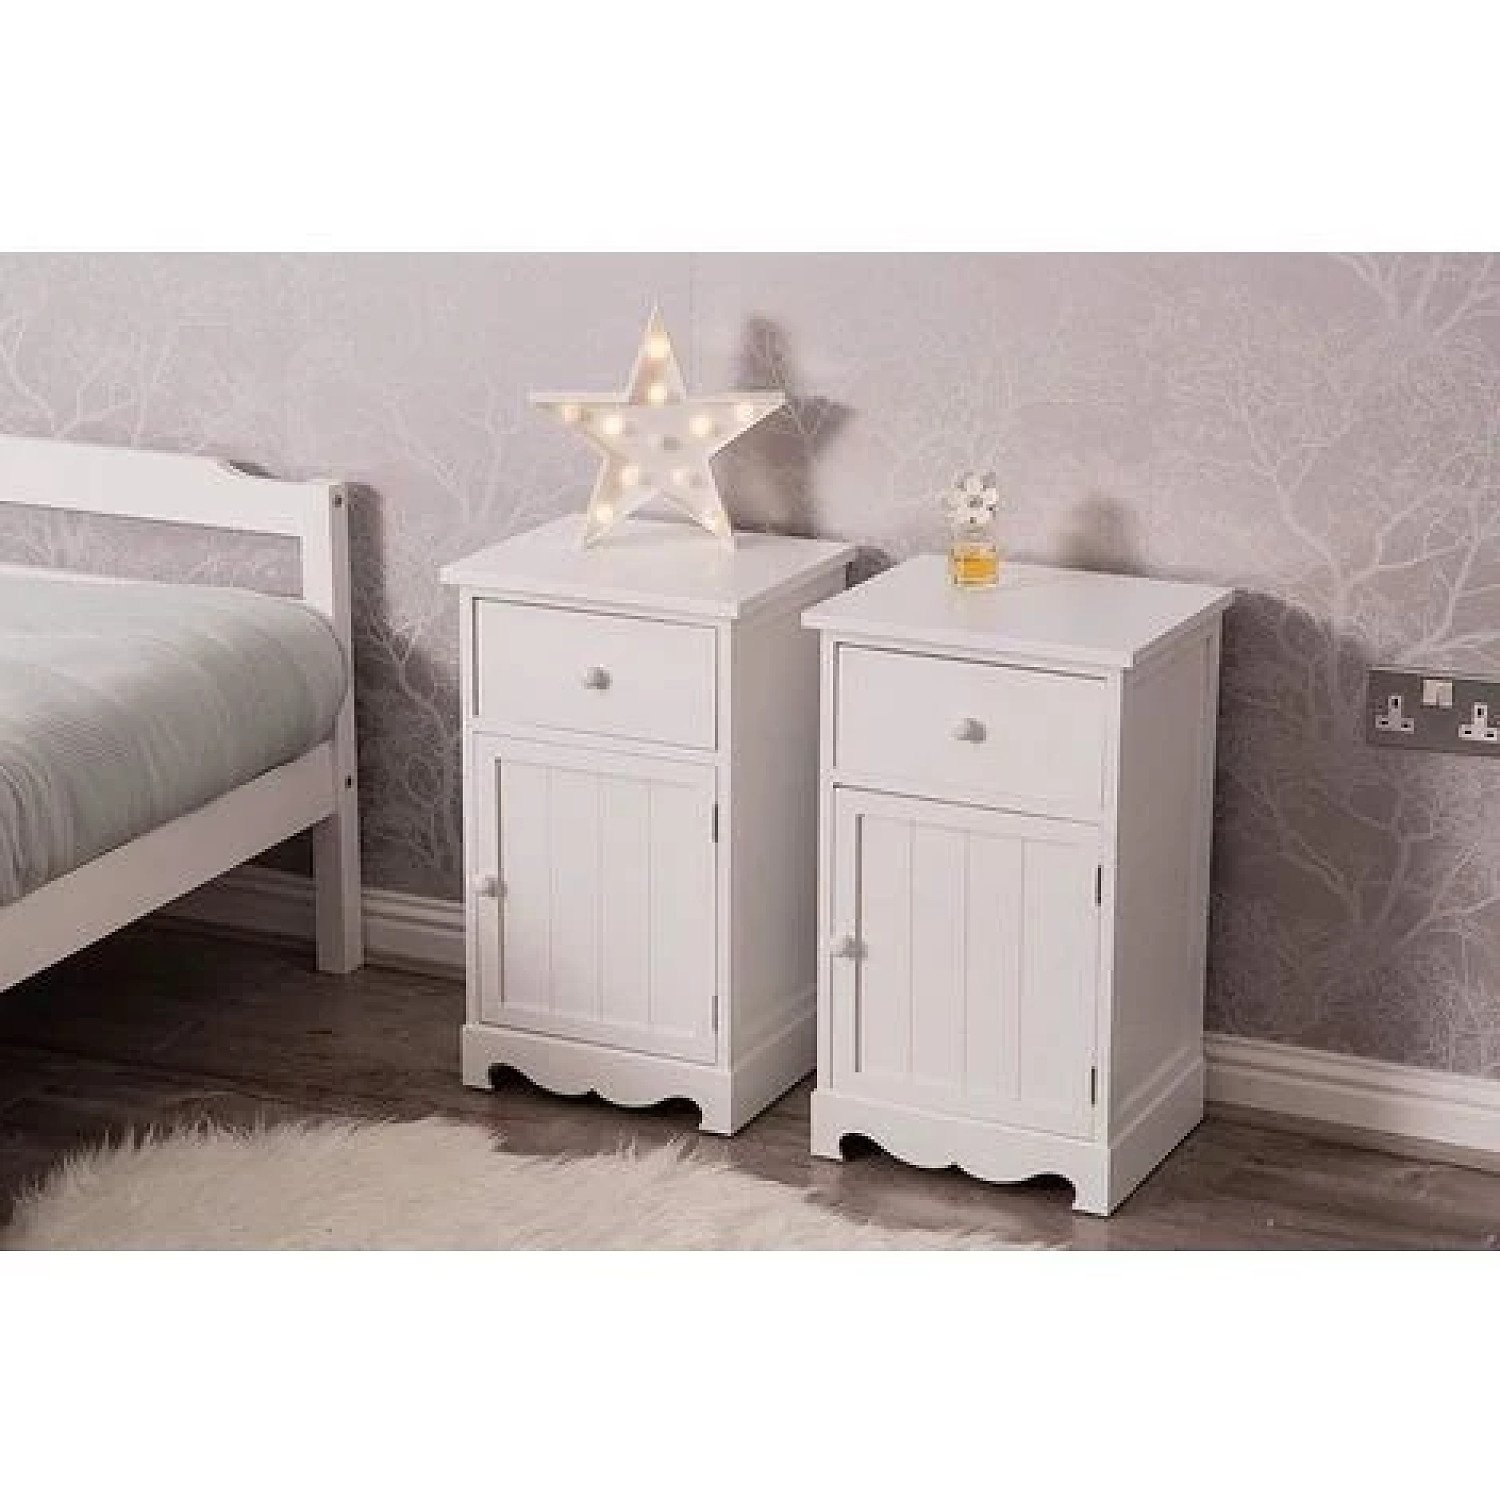 2 X Bedside Night Stand Cabinets Free Postage